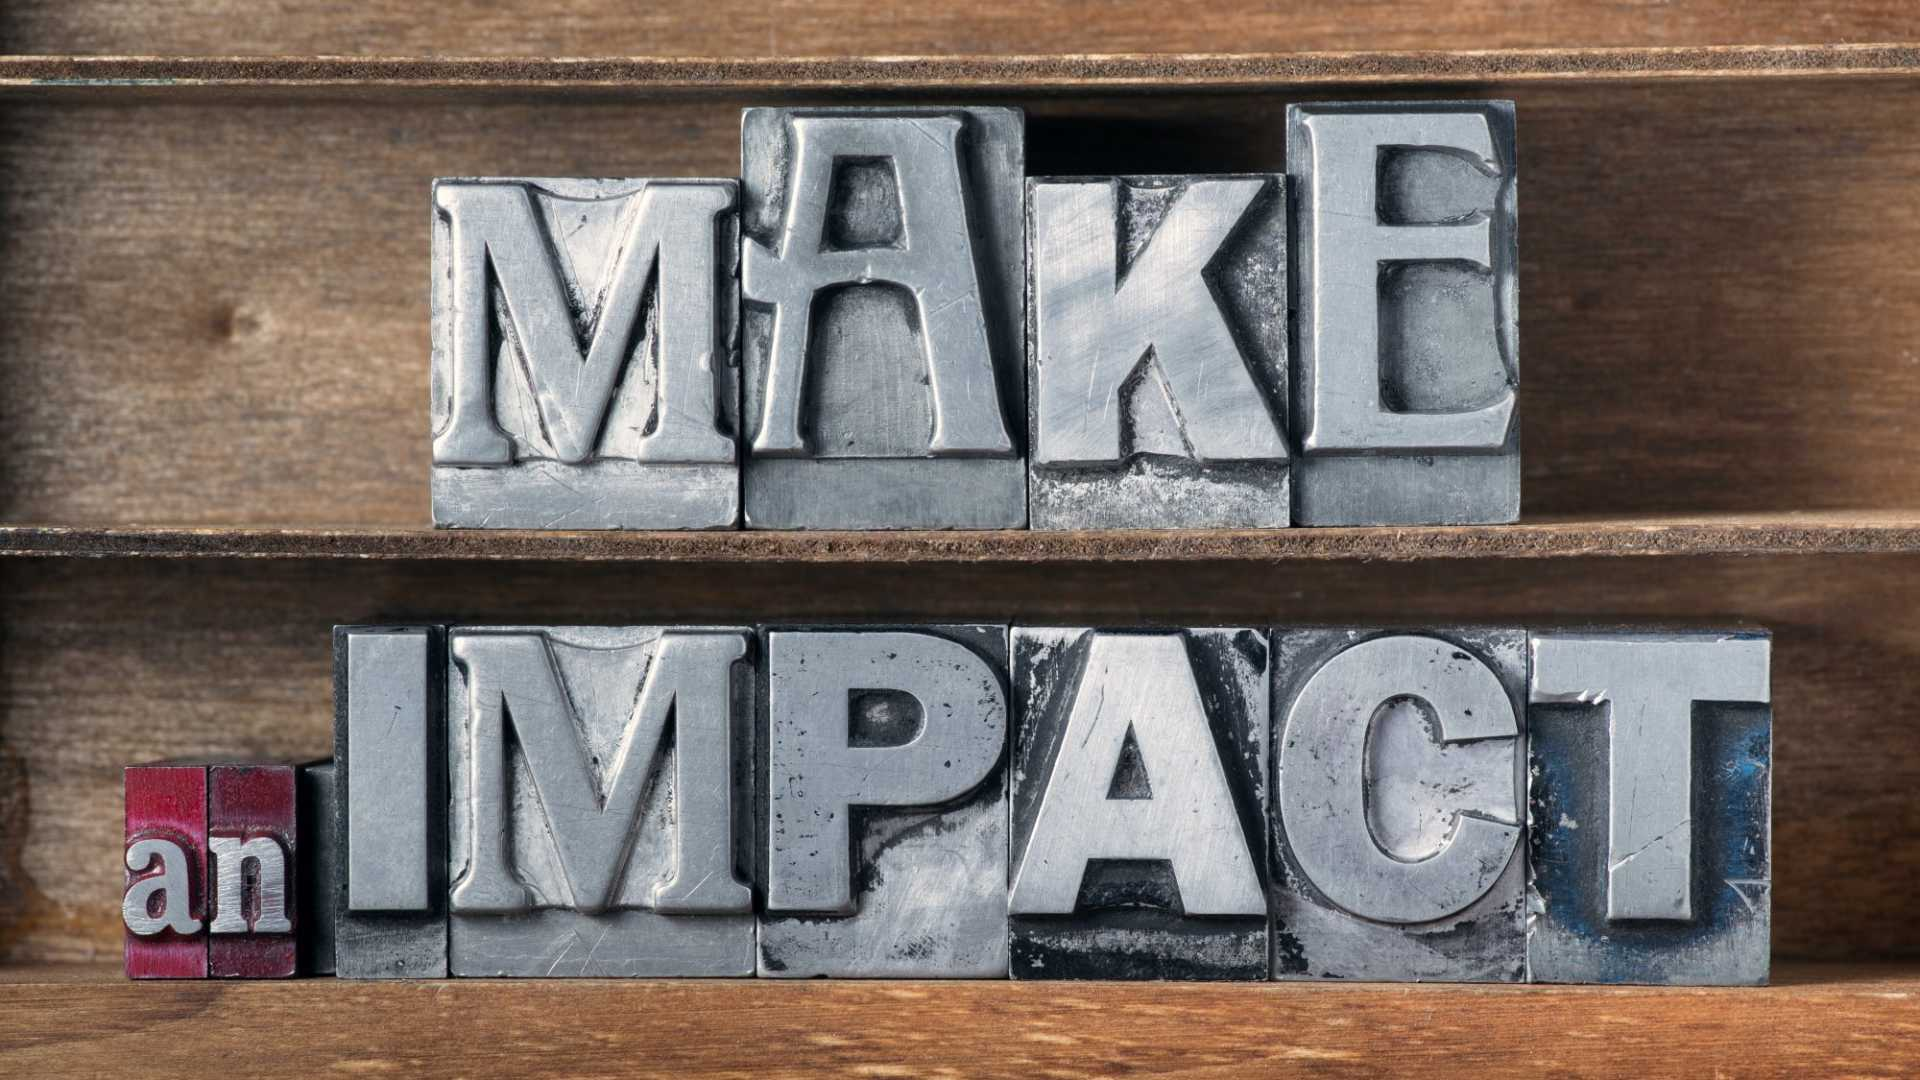 Why Prioritizing Impact in Covid-19 Response Benefits All